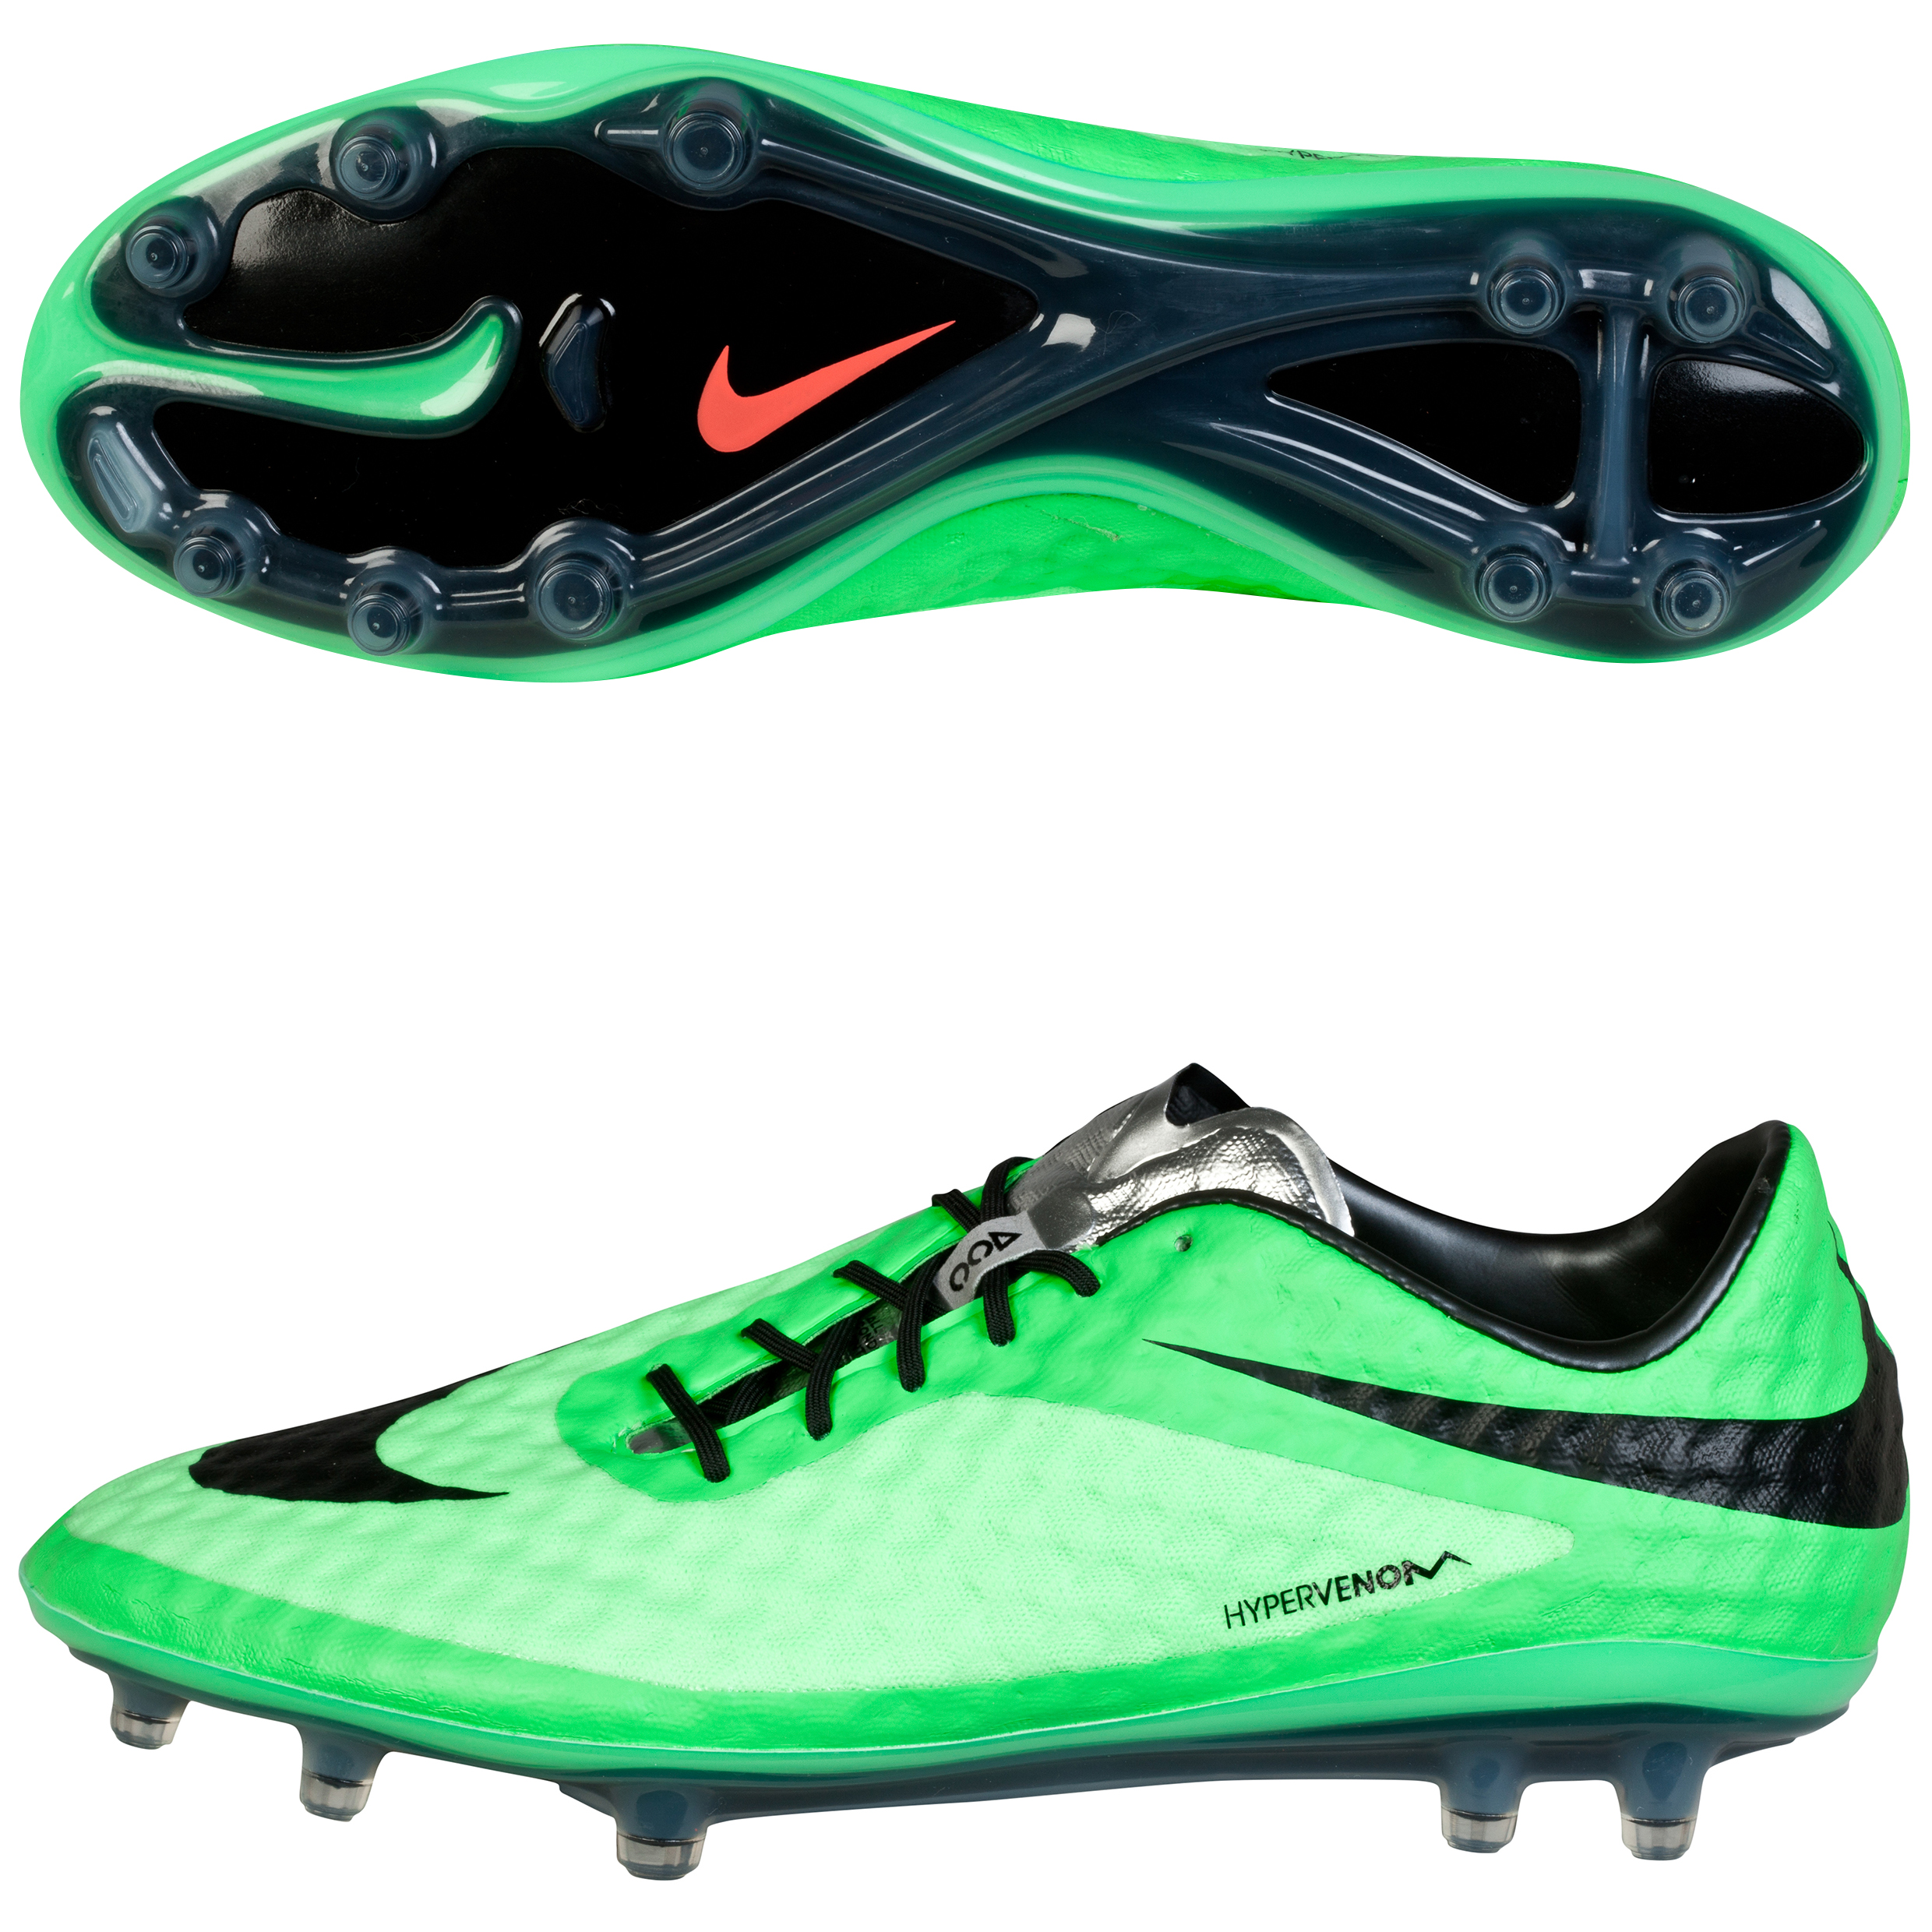 Nike Hypervenom Phantom Firm Ground Football Boots Green